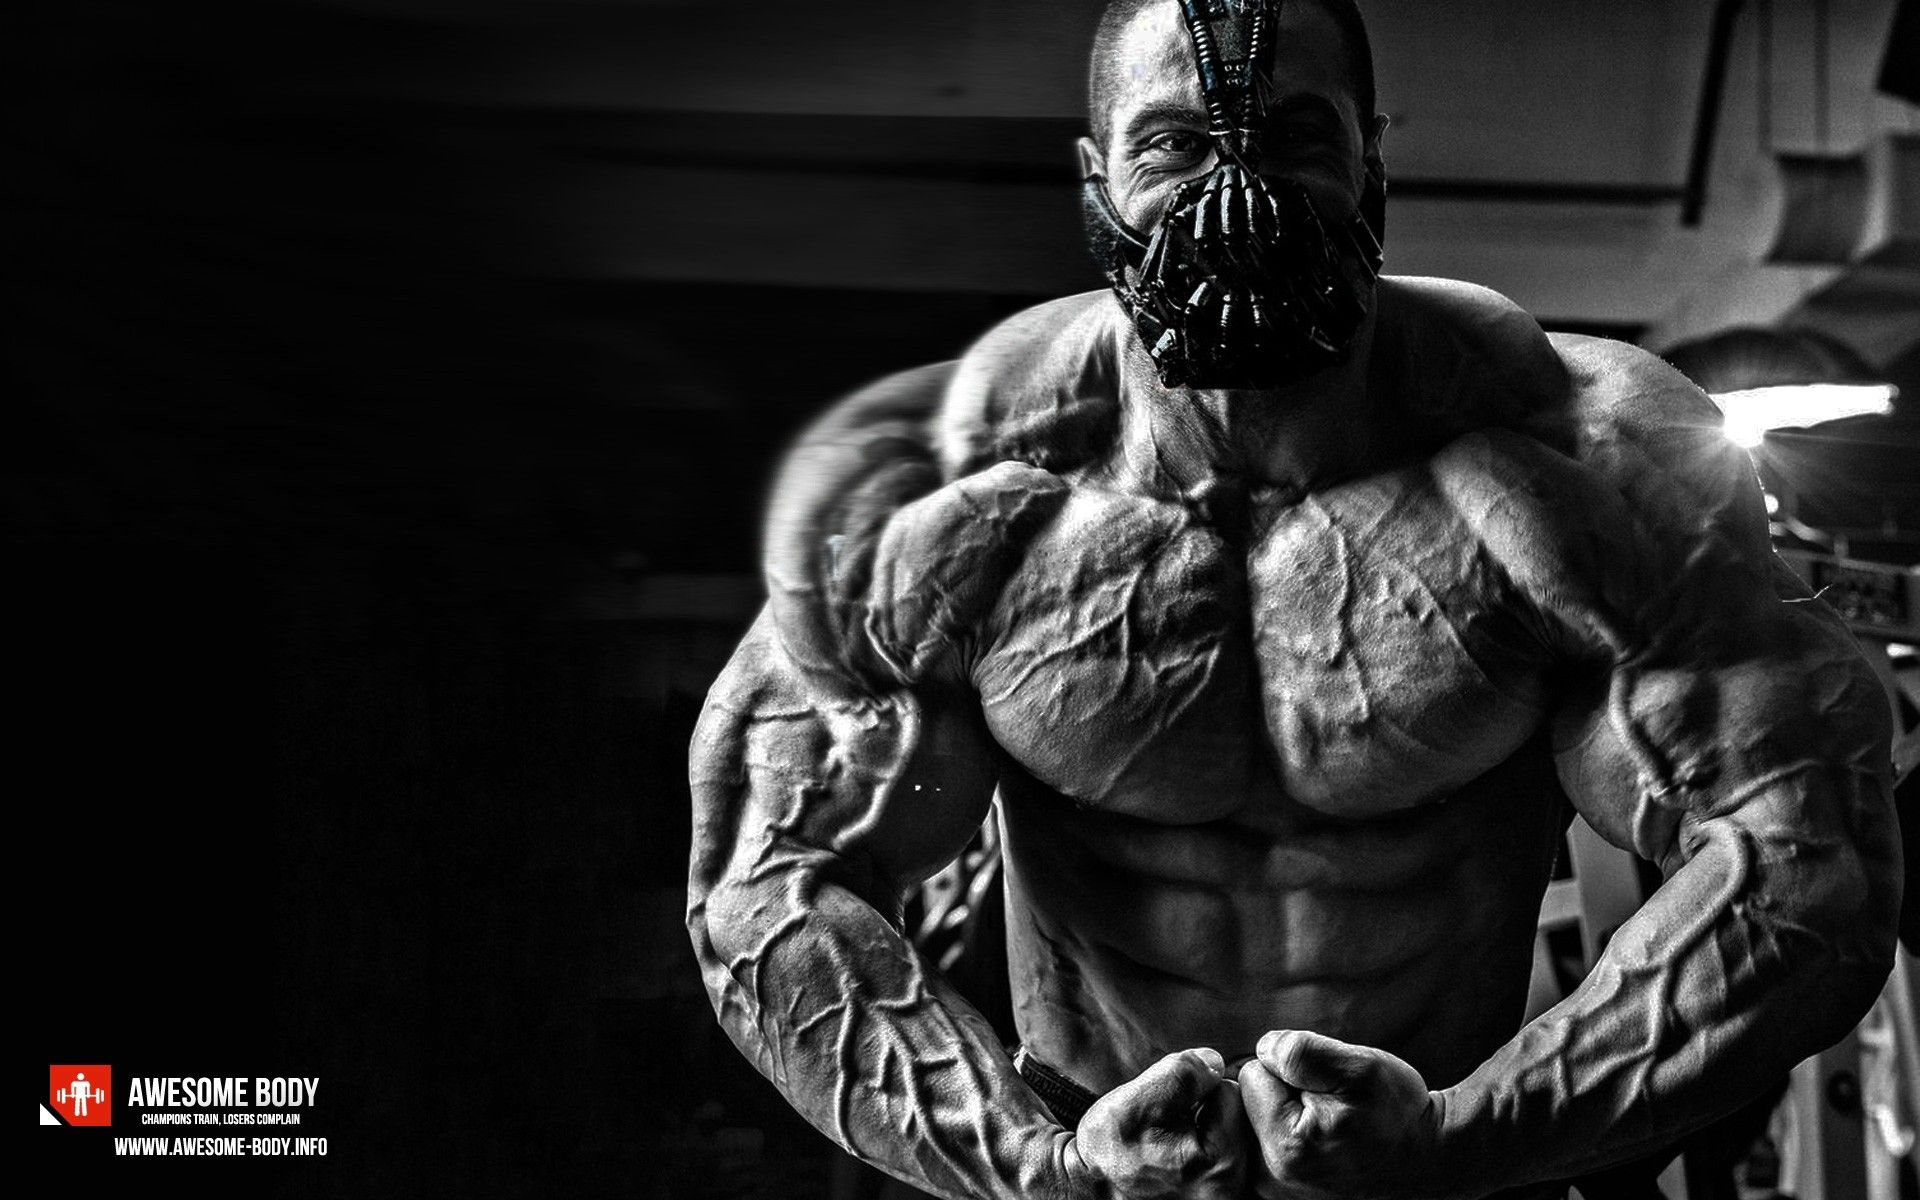 Pin By Jemish Gujrati On Bodybuilding Bodybuilding Motivation Bodybuilding Bodybuilding Logo Gym images hd wallpaper download